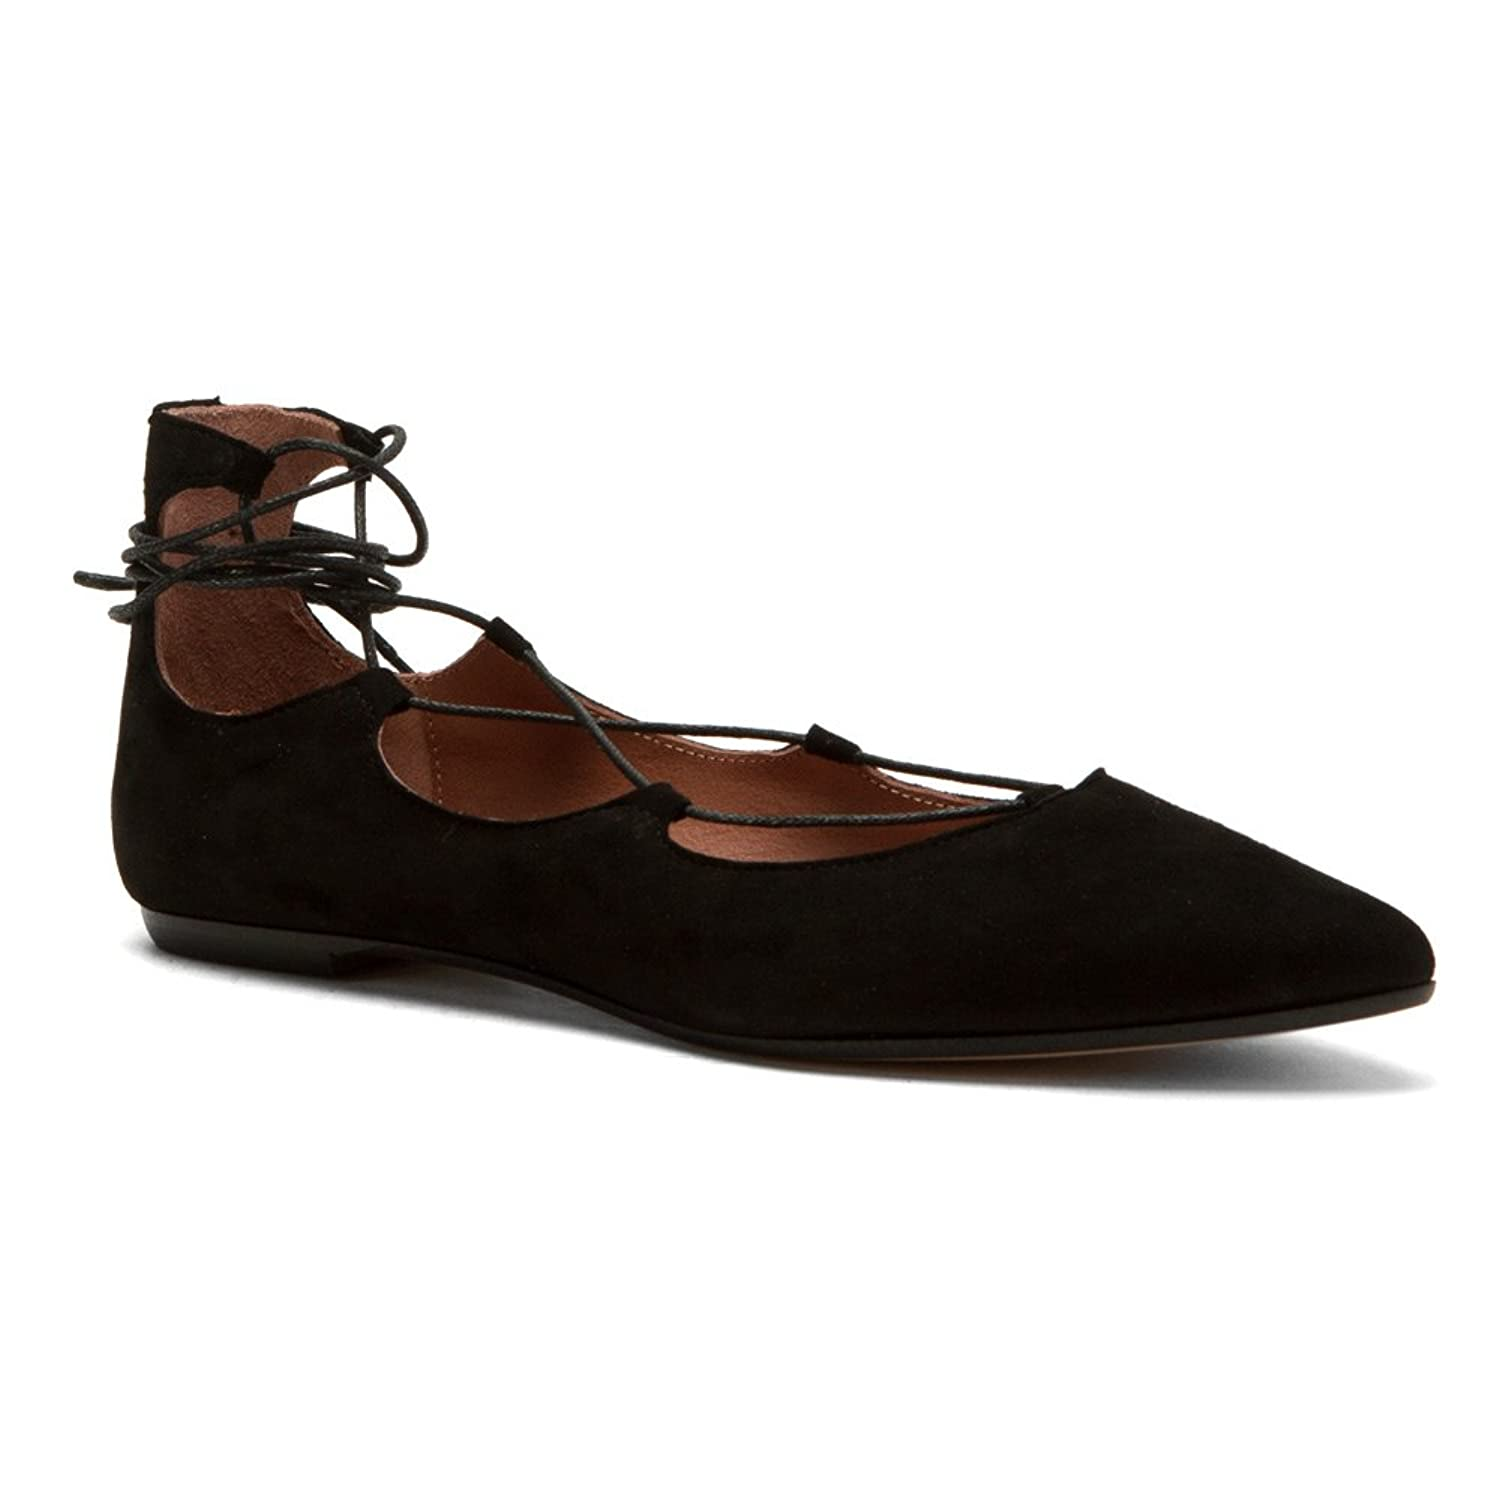 Summit by White Mountain Women's Karena Black Suede Flat 40 M